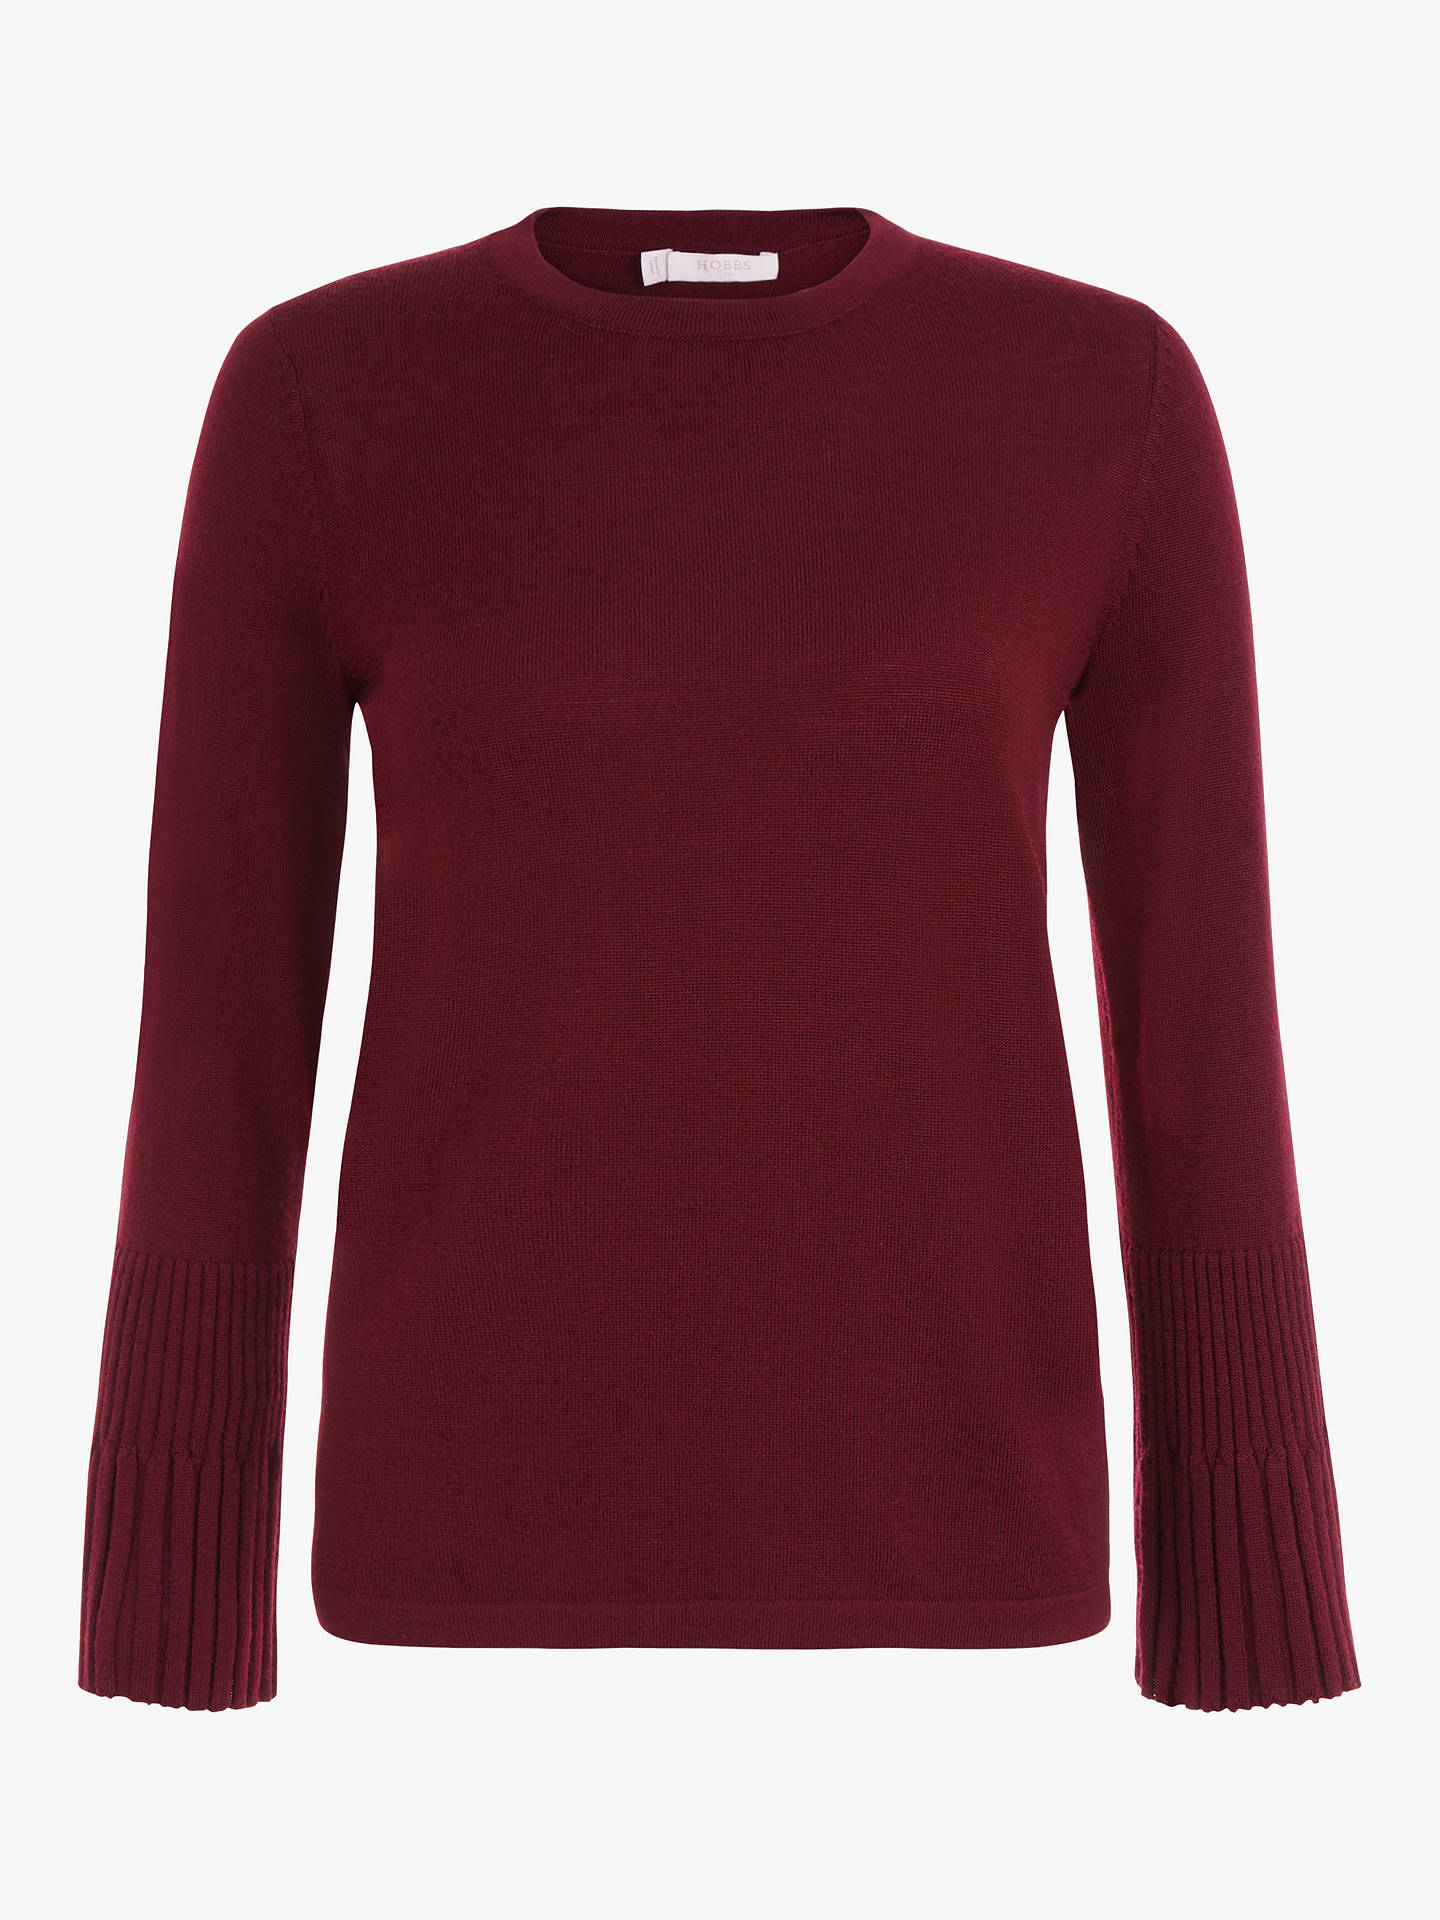 BuyHobbs Helen Merino Wool Jumper, Burgundy, XS Online at johnlewis.com